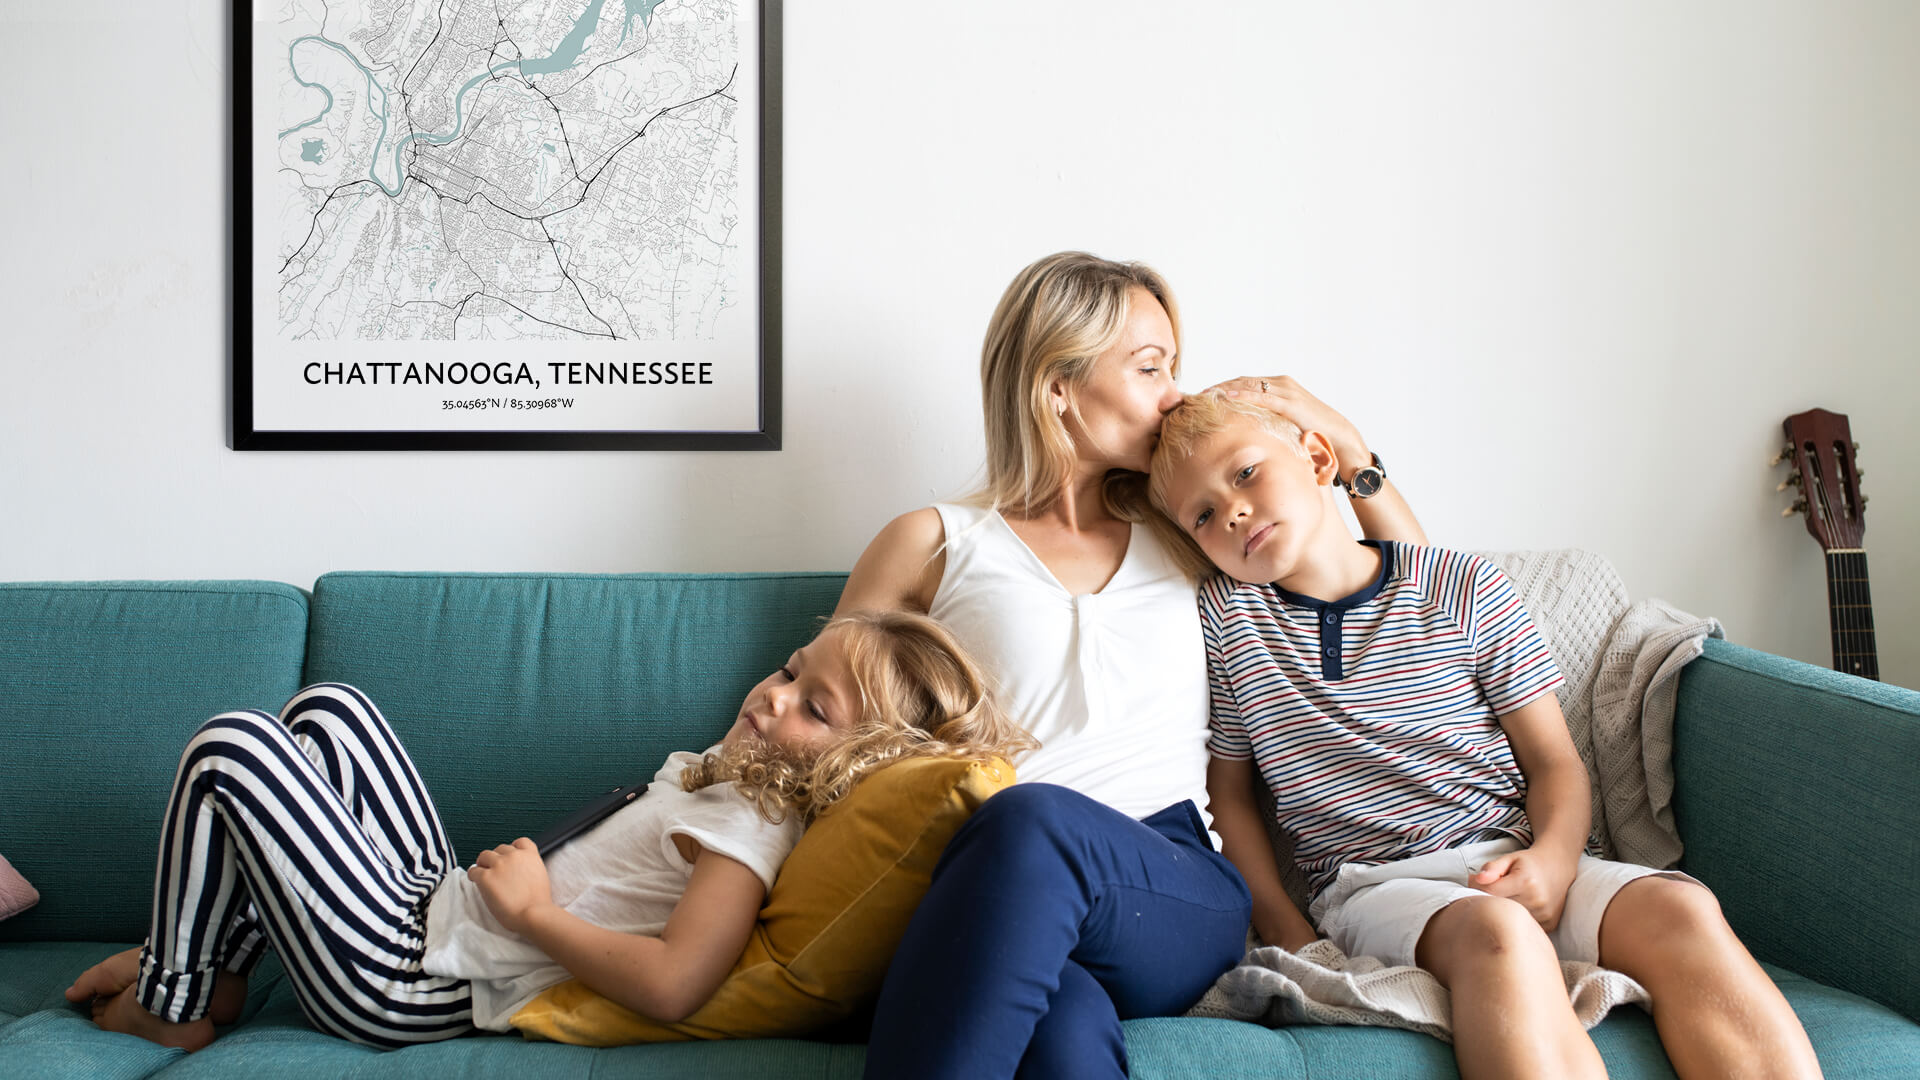 Chattanooga map poster